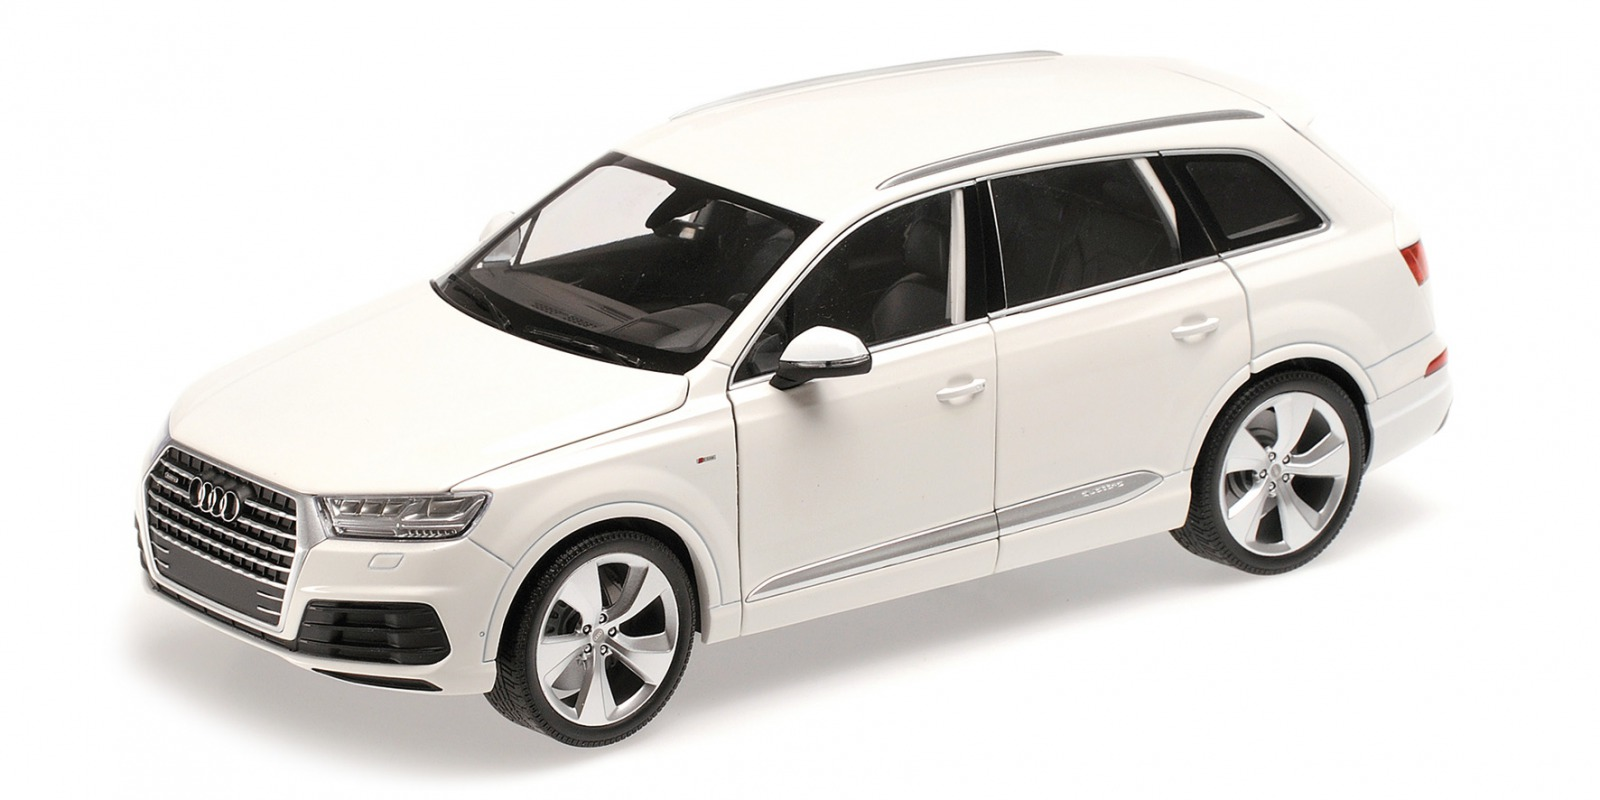 autocar for prices audi engine specs cars news new and naias car